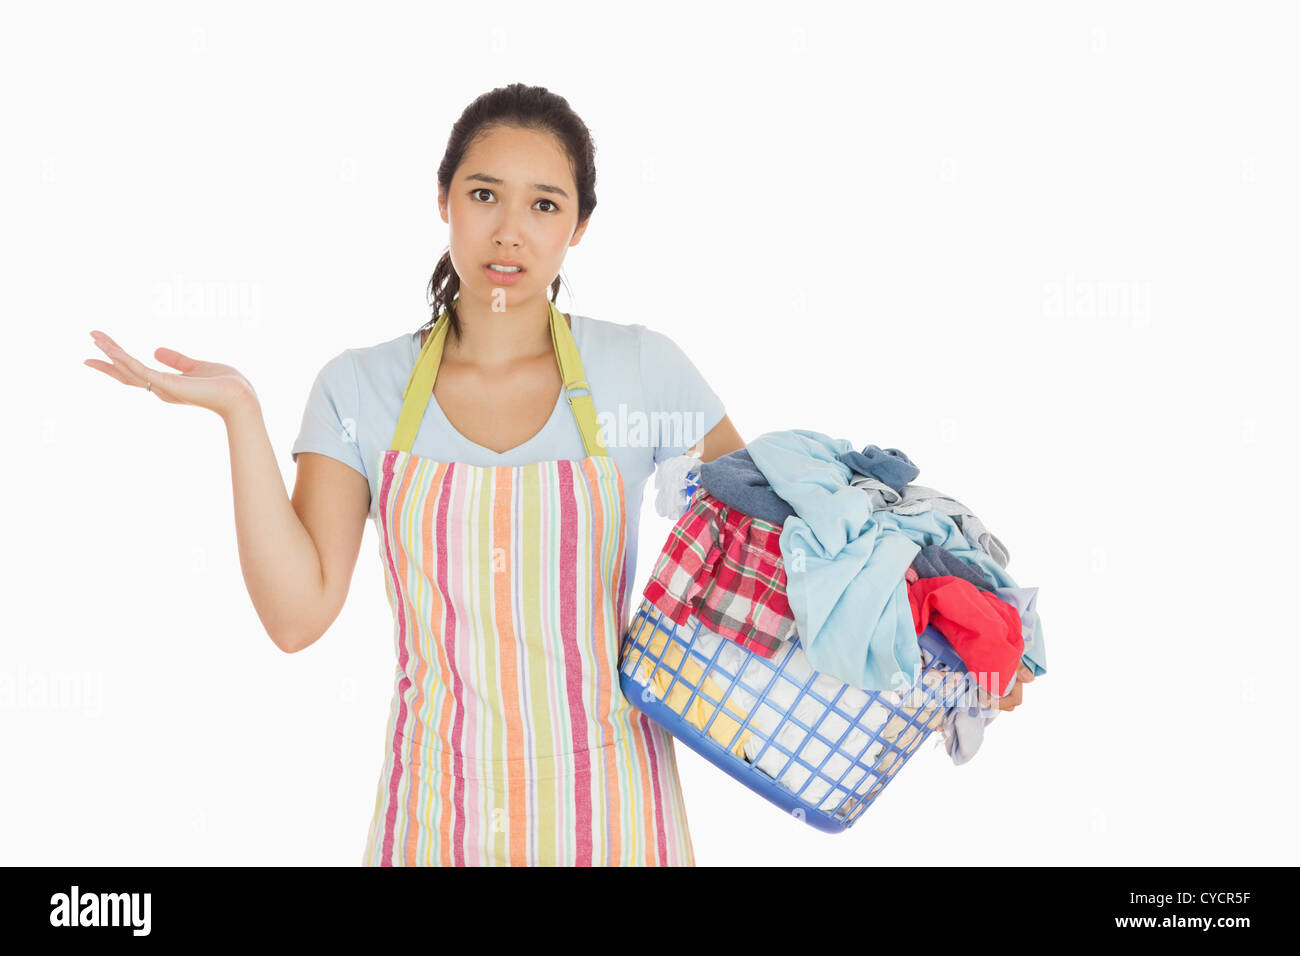 Puzzled young woman holding laundry basket full of dirty laundry - Stock Image